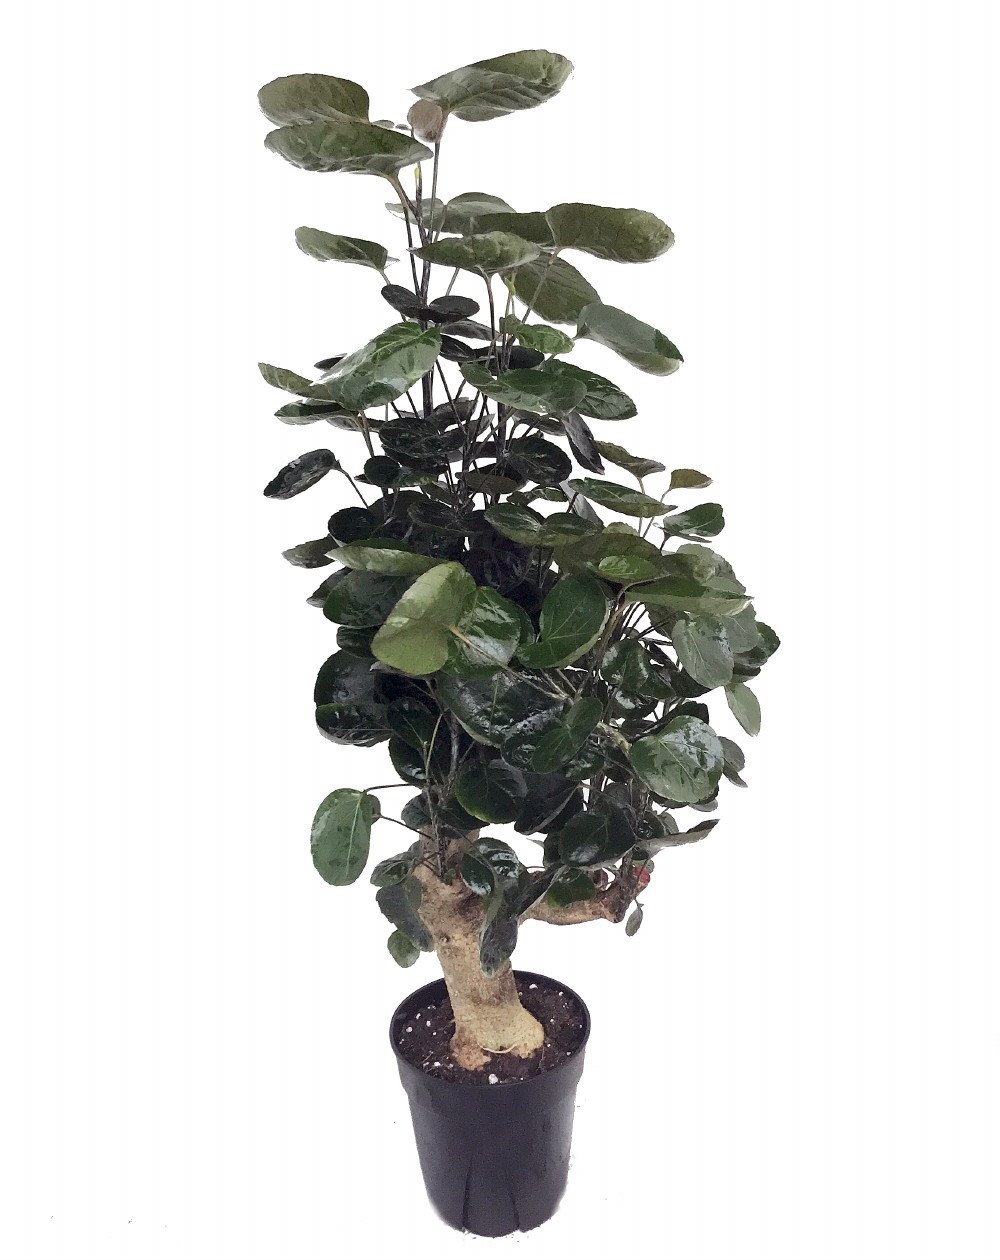 Fabian Japanese Ming Aralia Tree - Polyscias - Indoor - 6'' Pot - Thick Trunk